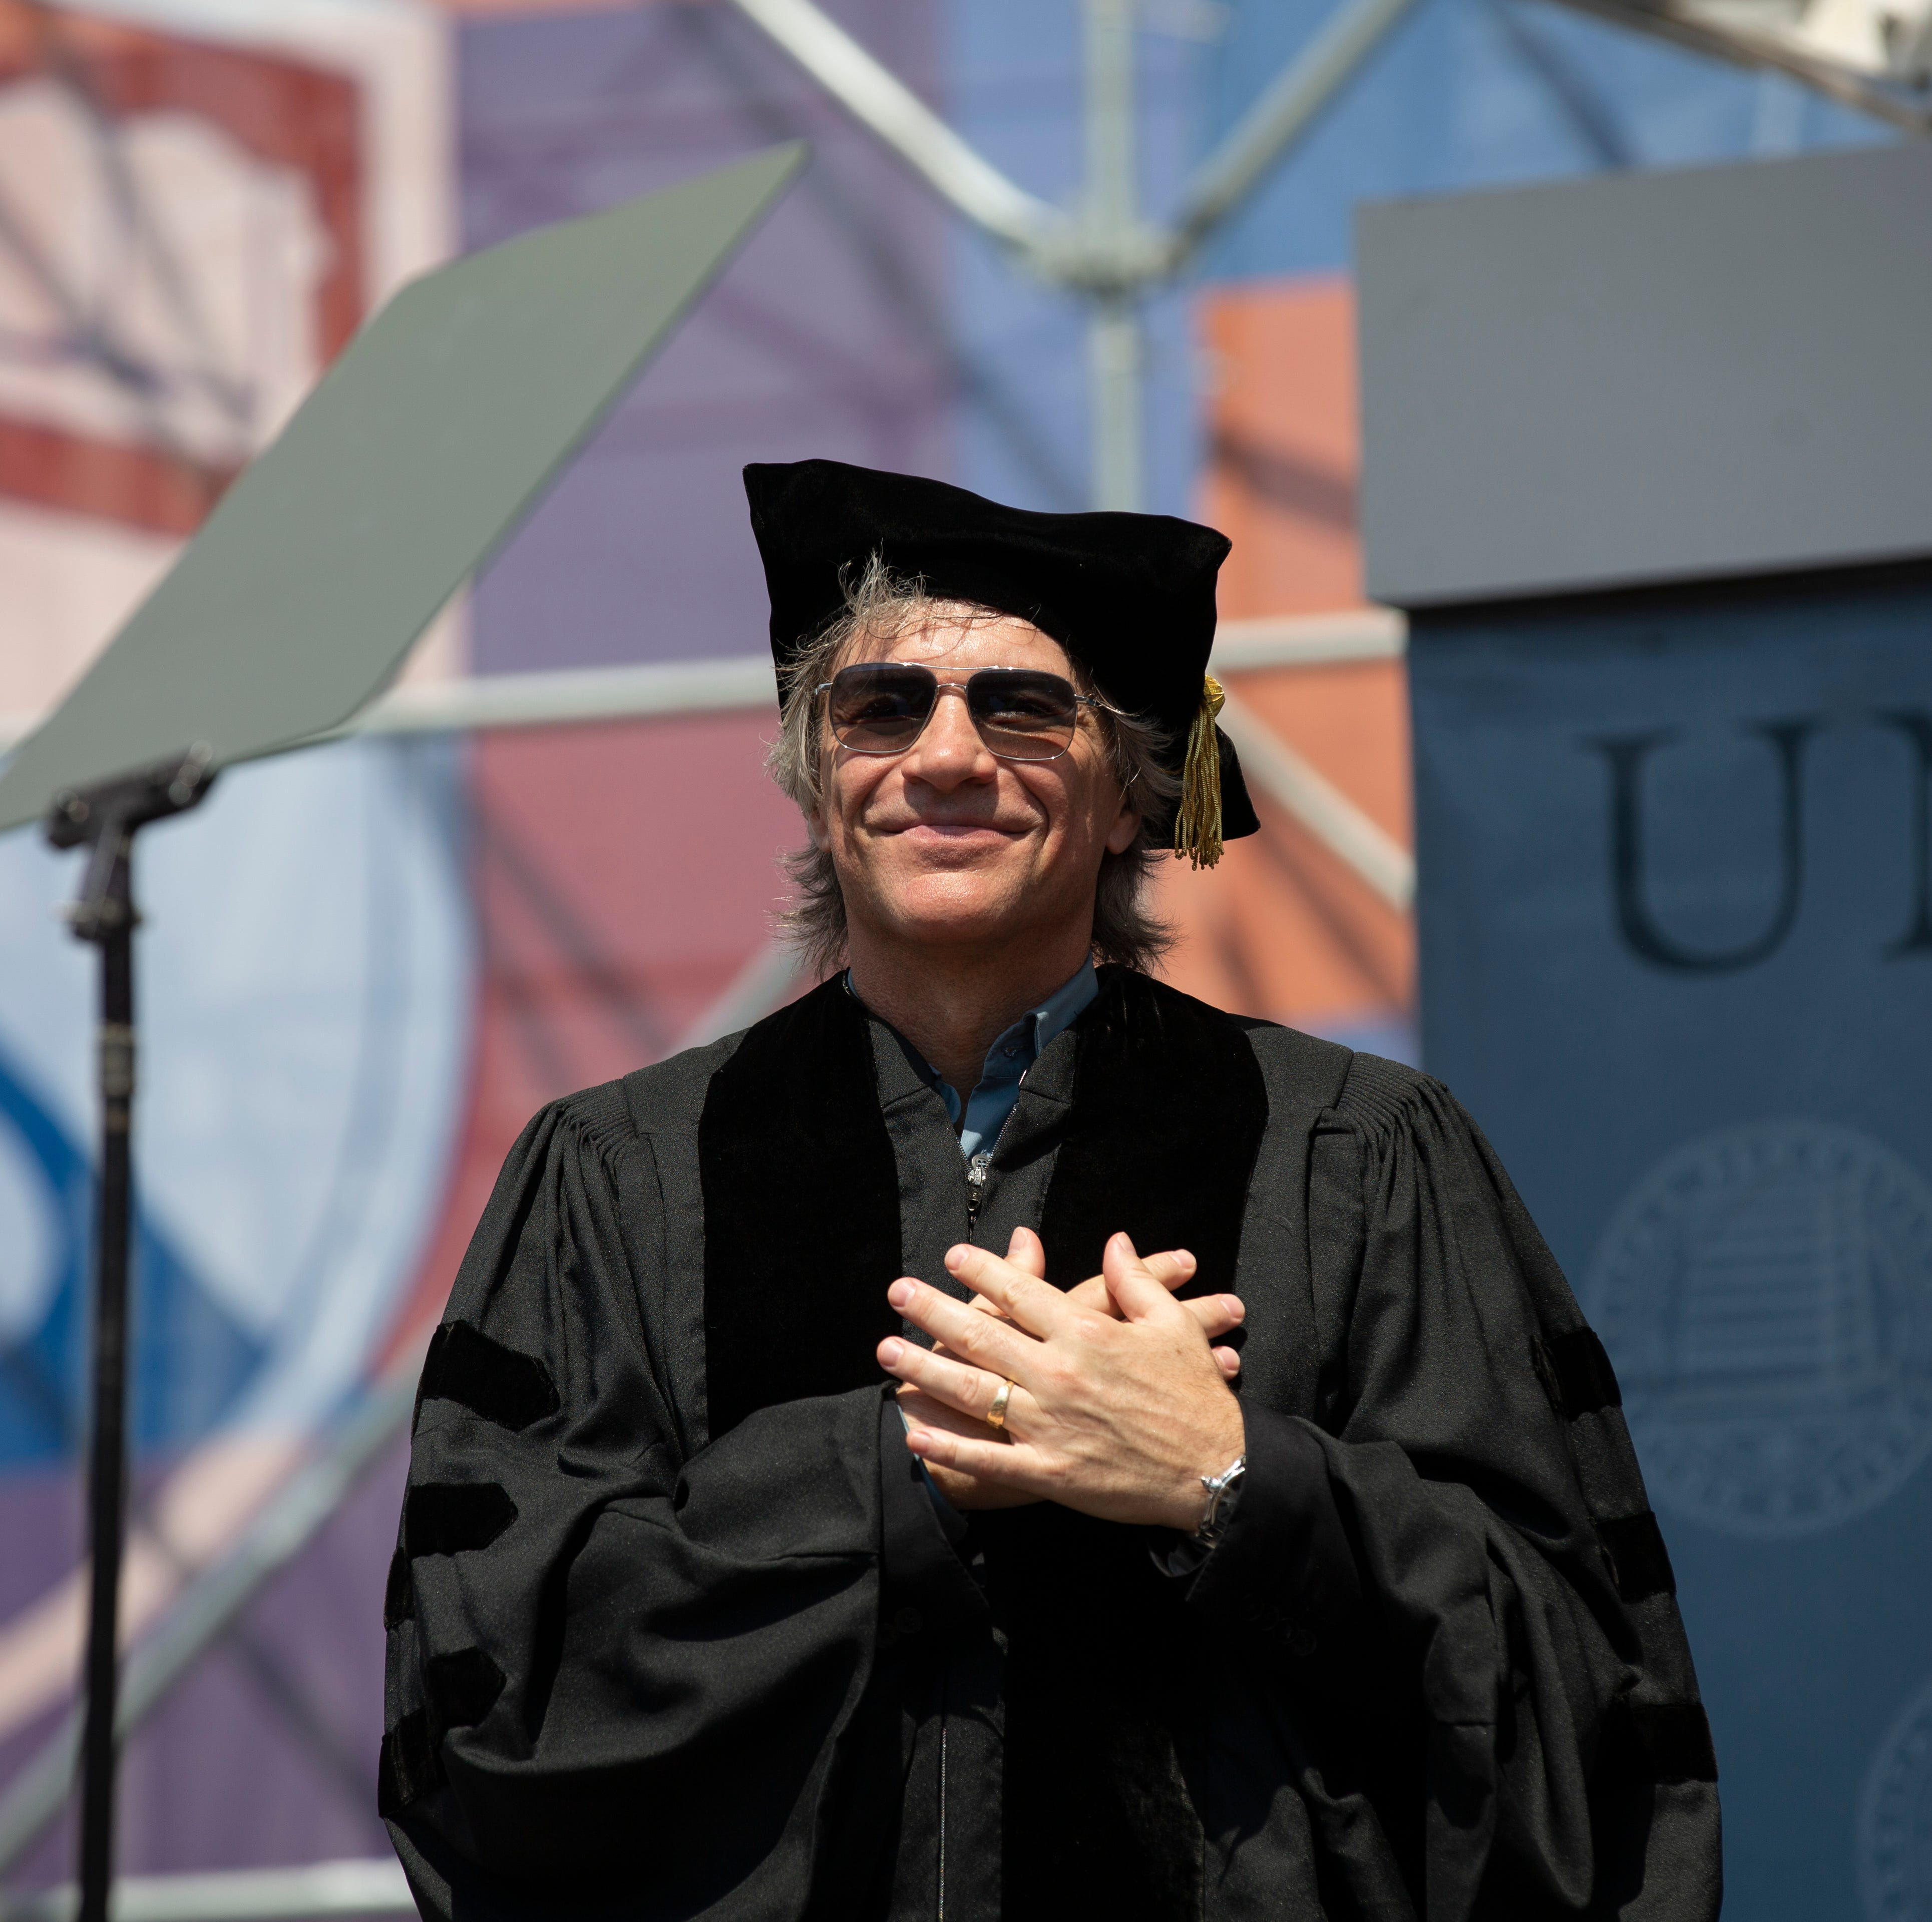 Jon Bon Jovi receives honorary Doctor of Music degree at Penn commencement SEE VIDEO